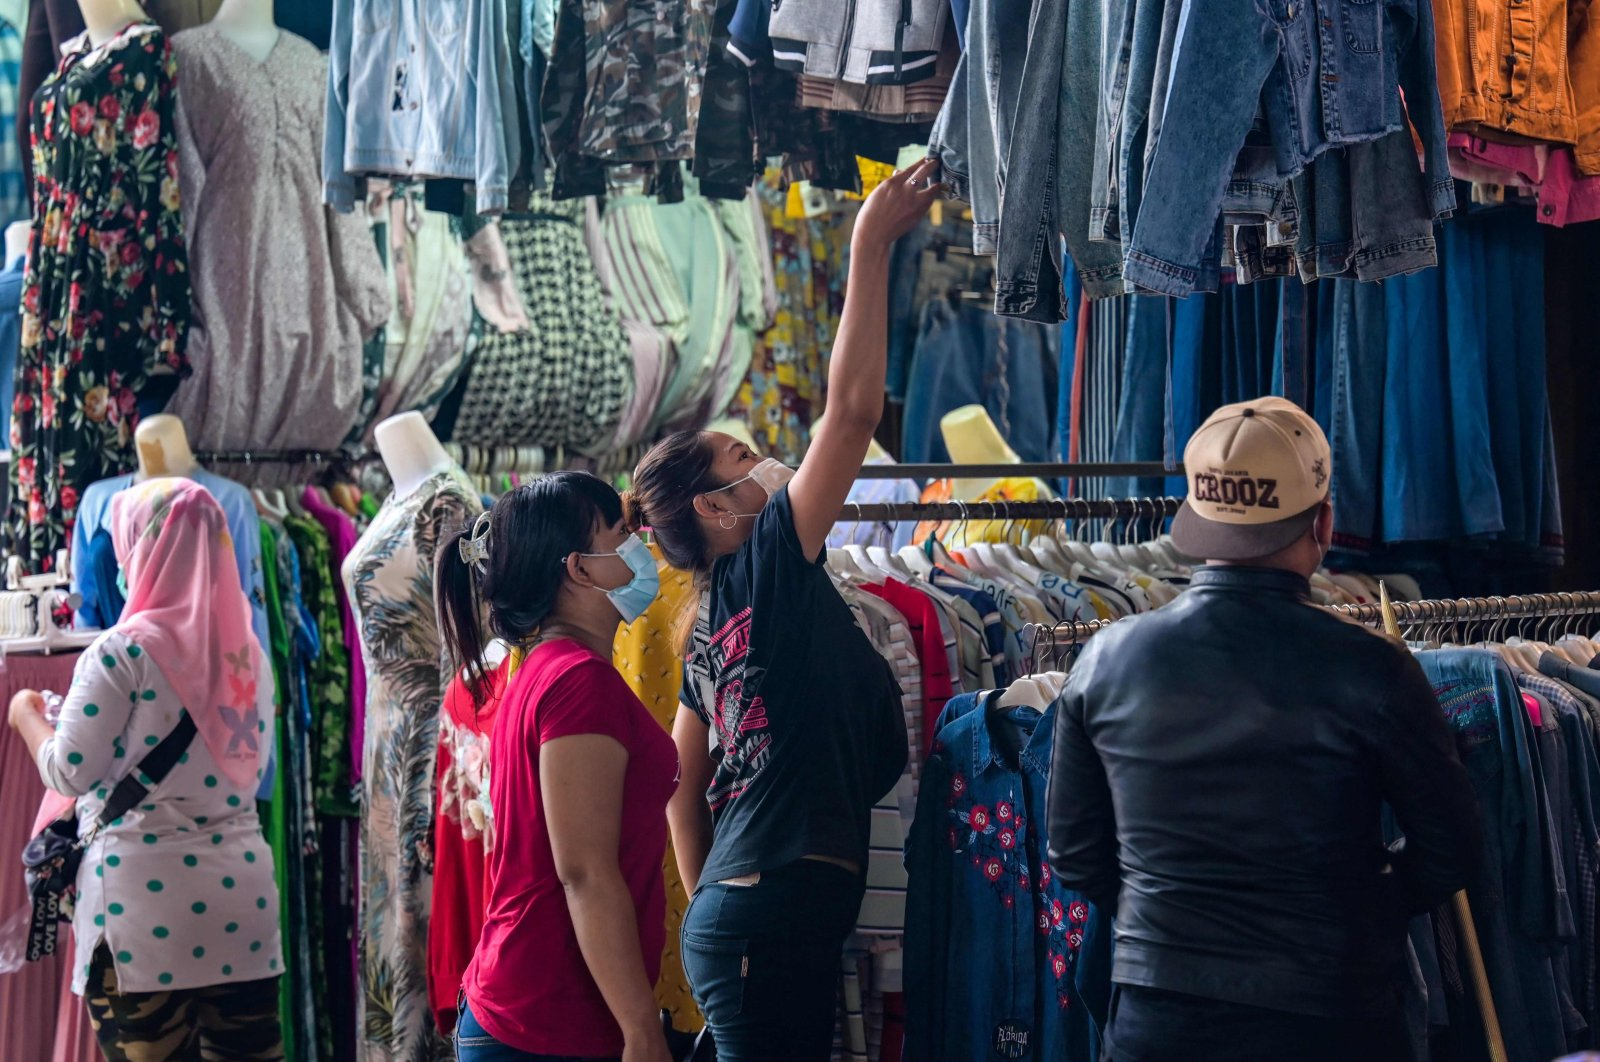 People shopping for clothing at street stalls in Jakarta, Indonesia, May 4, 2021. (AFP Photo)